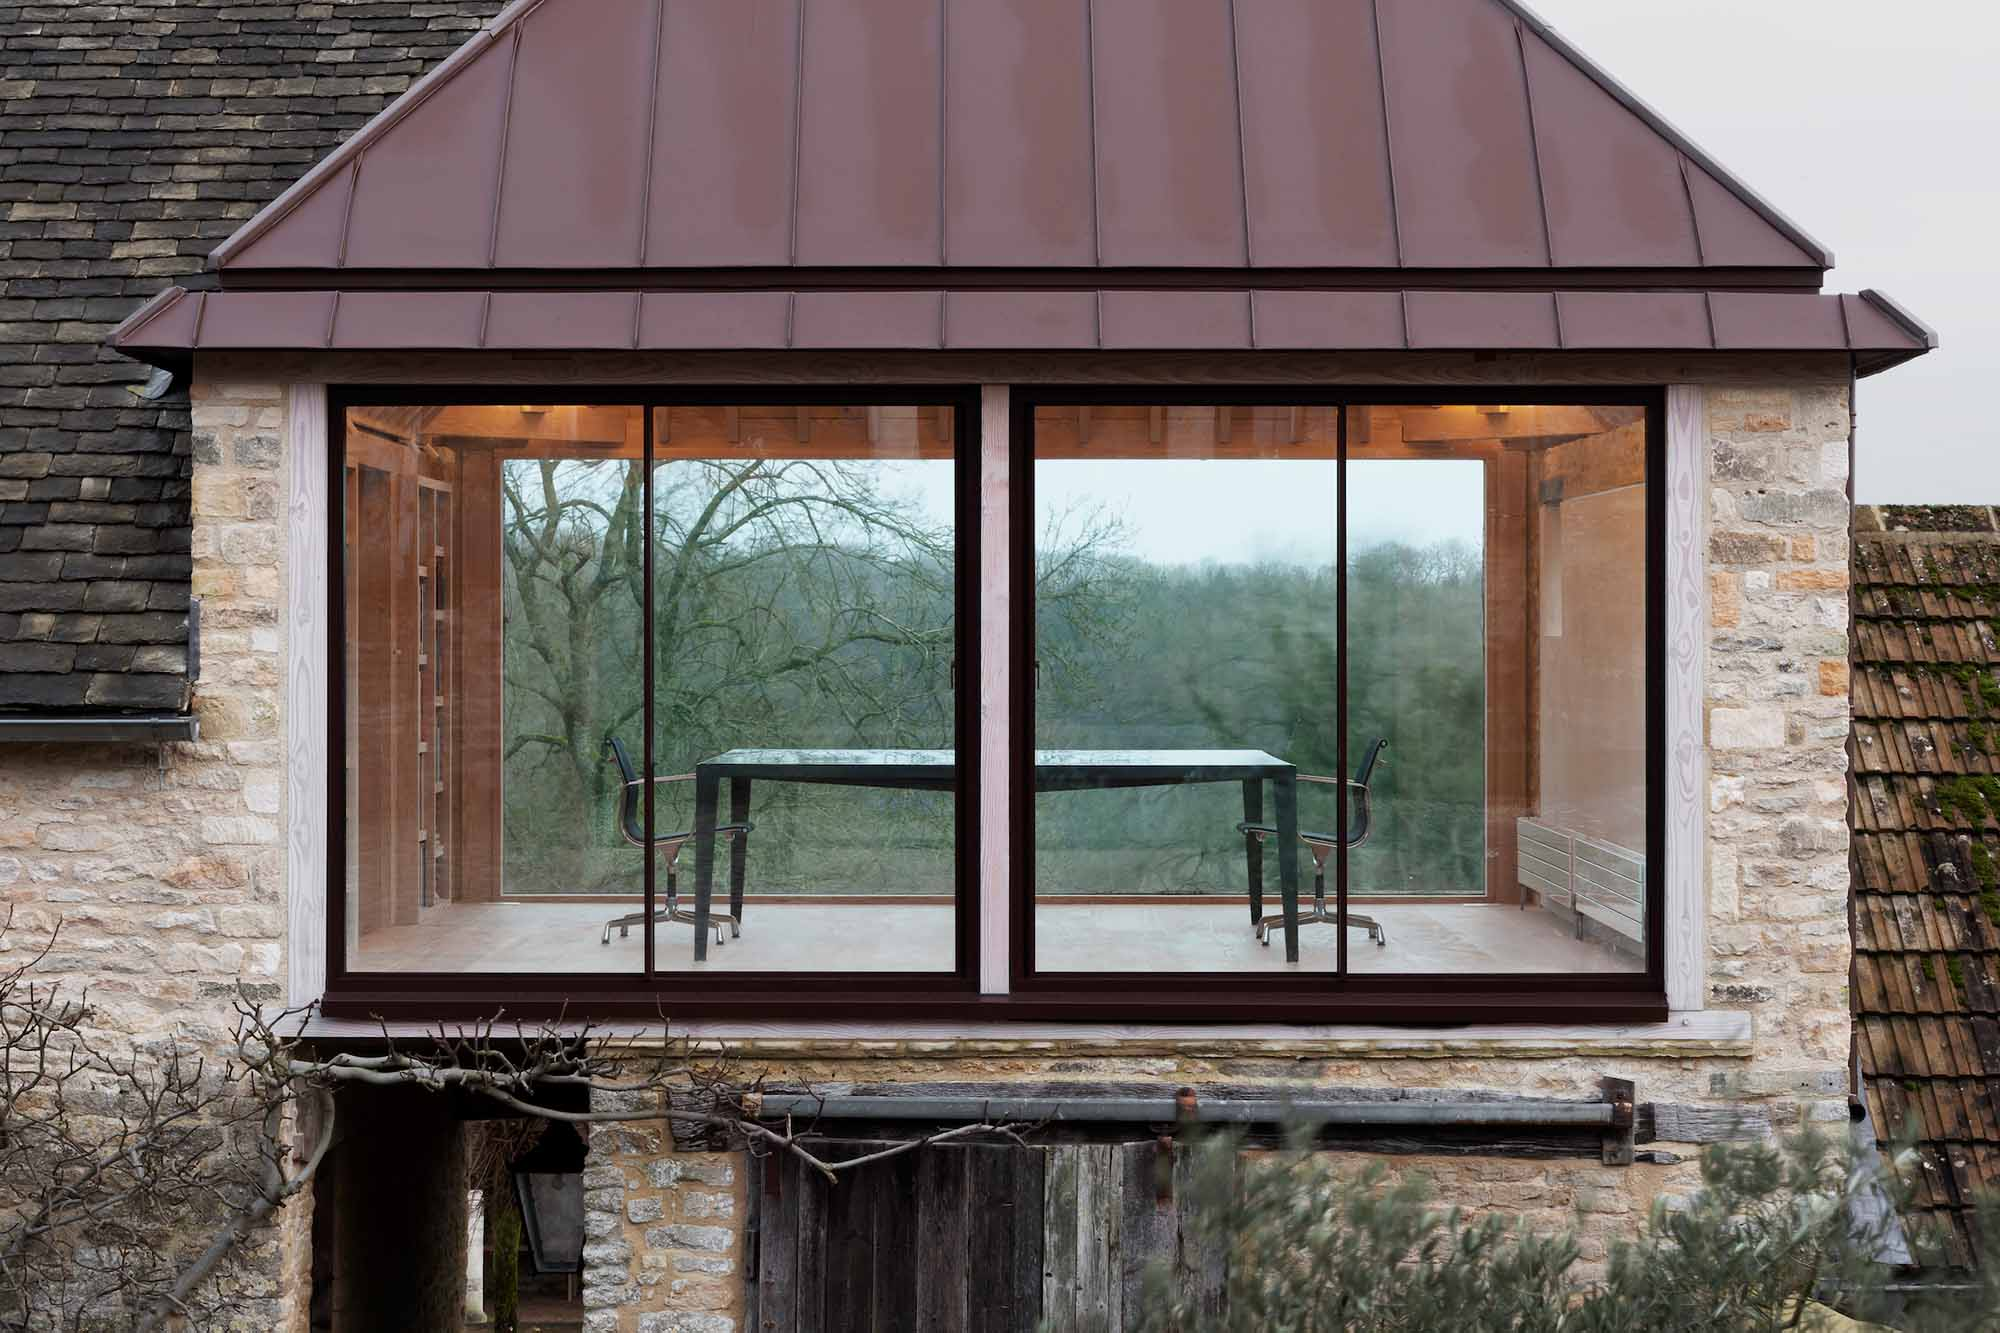 Richard Parr Associates Easter Park Farm Studio Lasting Architecture Rooted In Respect For The Environment Materials And Craft